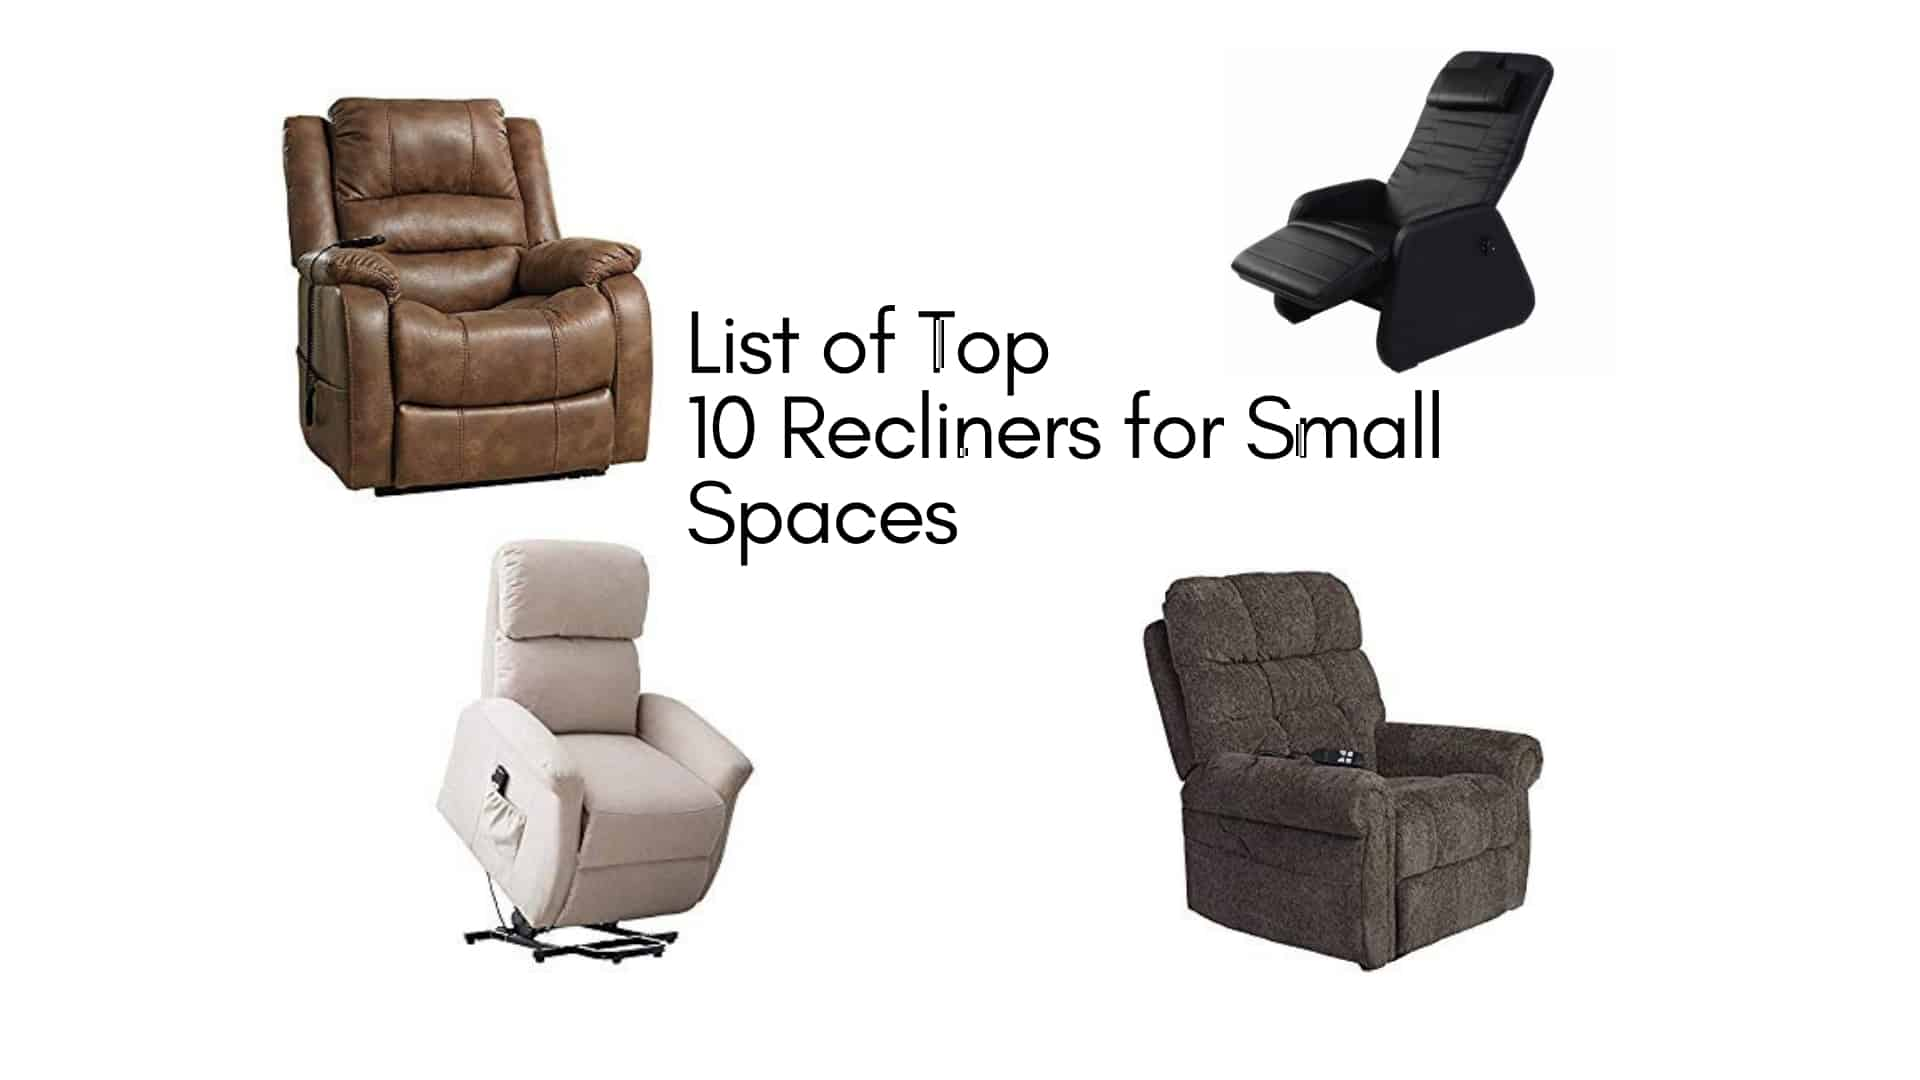 List Of Top 10 Reclining Chairs For Small Spaces 2019